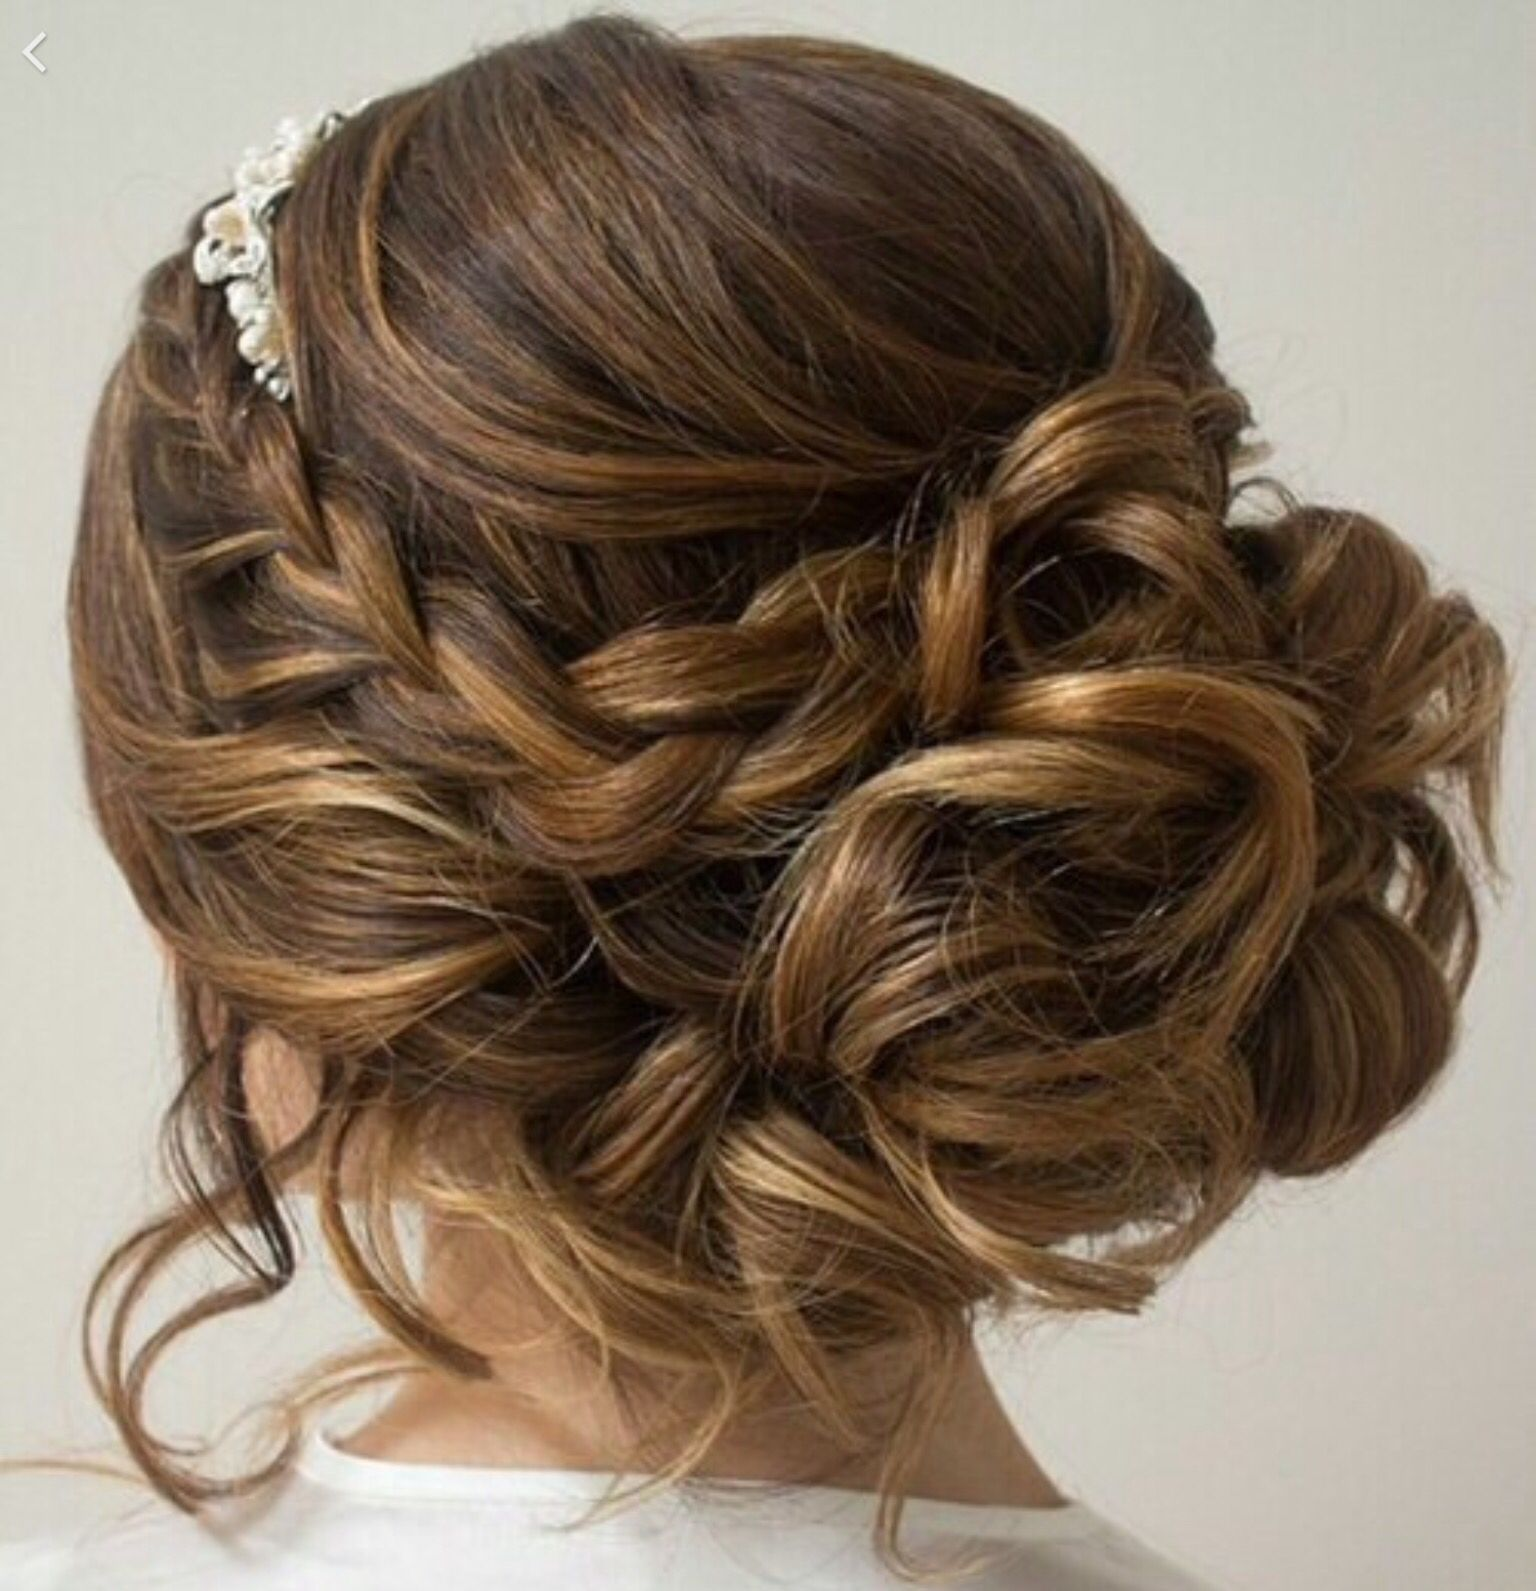 Hairstyles For A Quinceanera Pin By Maddie Ford On Graduation Pinterest Hair